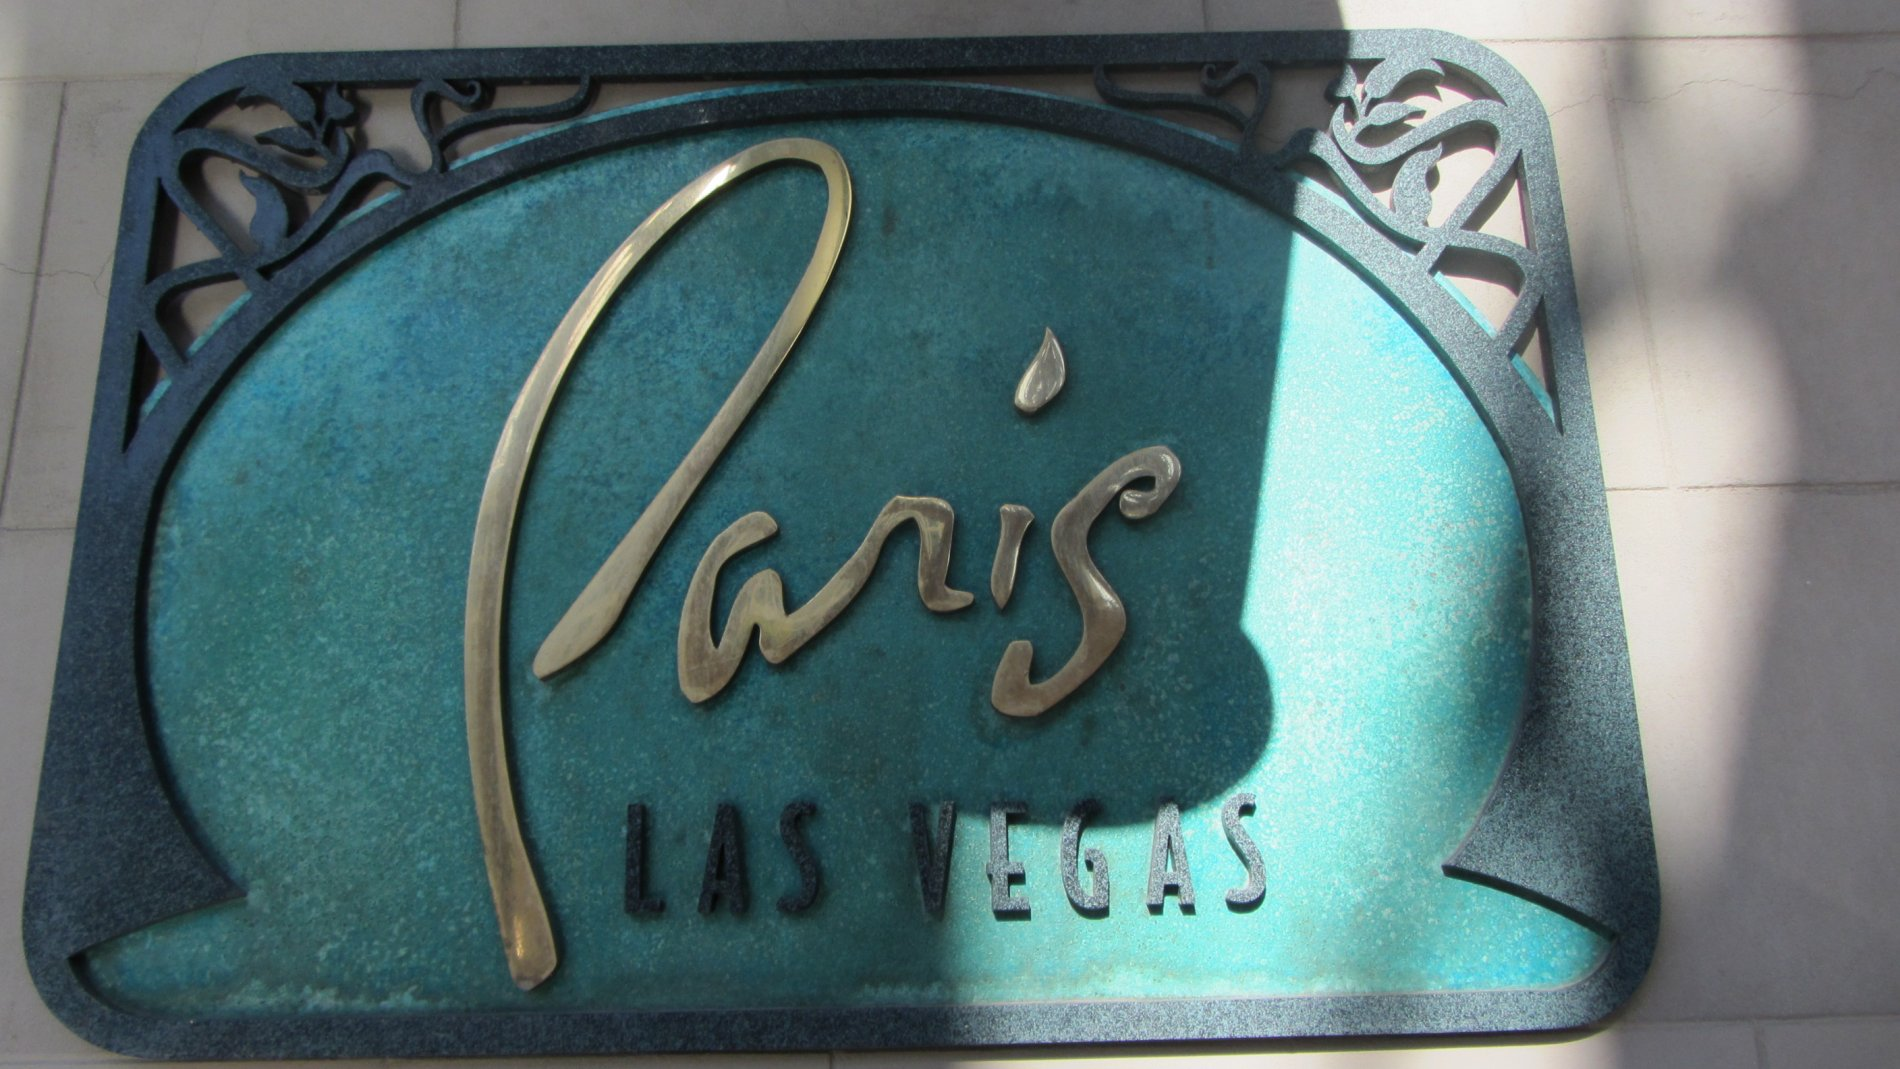 Las Vegas_43.JPG-commment